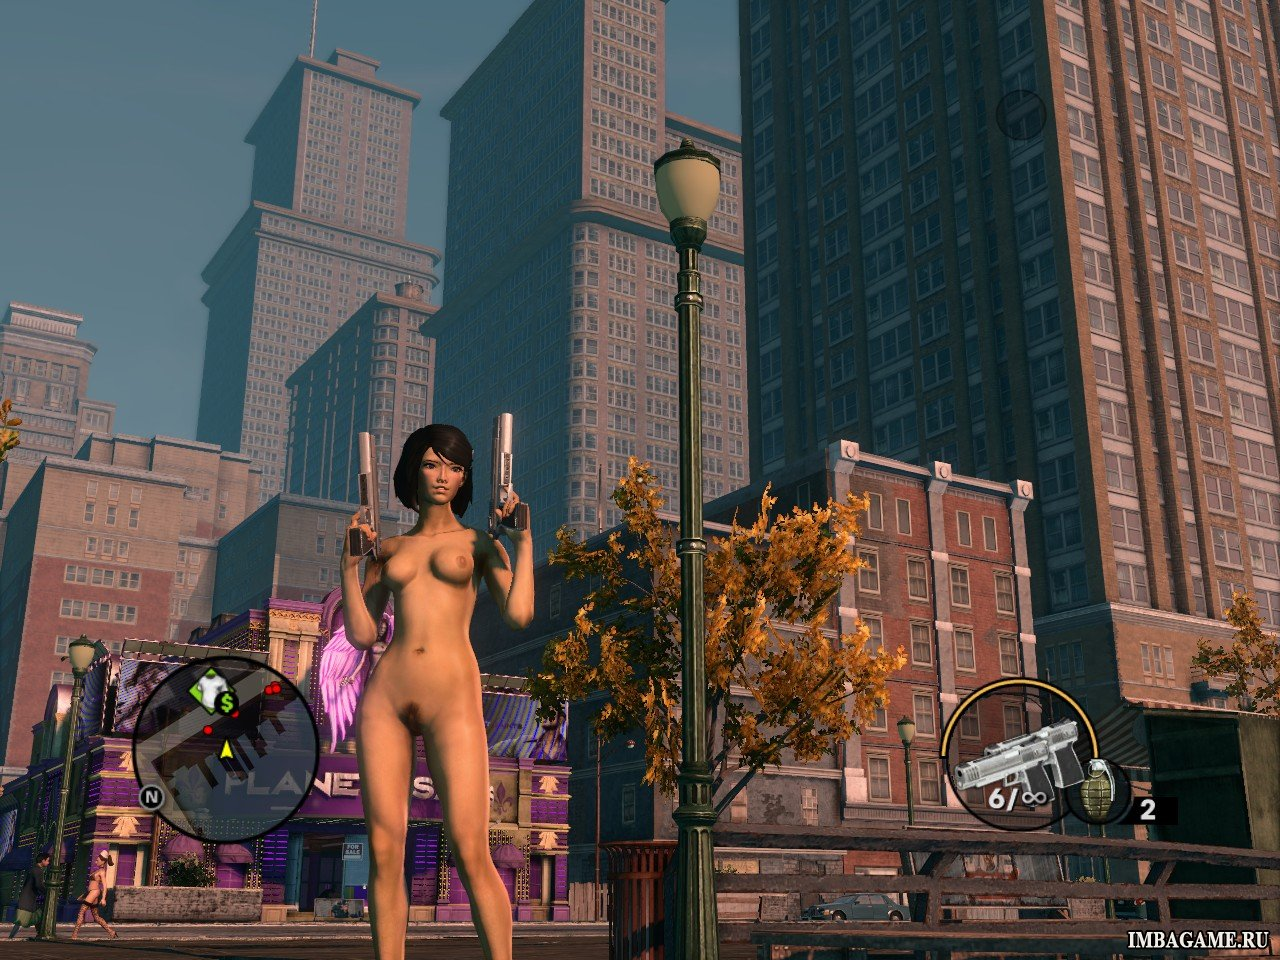 Saints row 2 porn naked strippers porncraft gallery